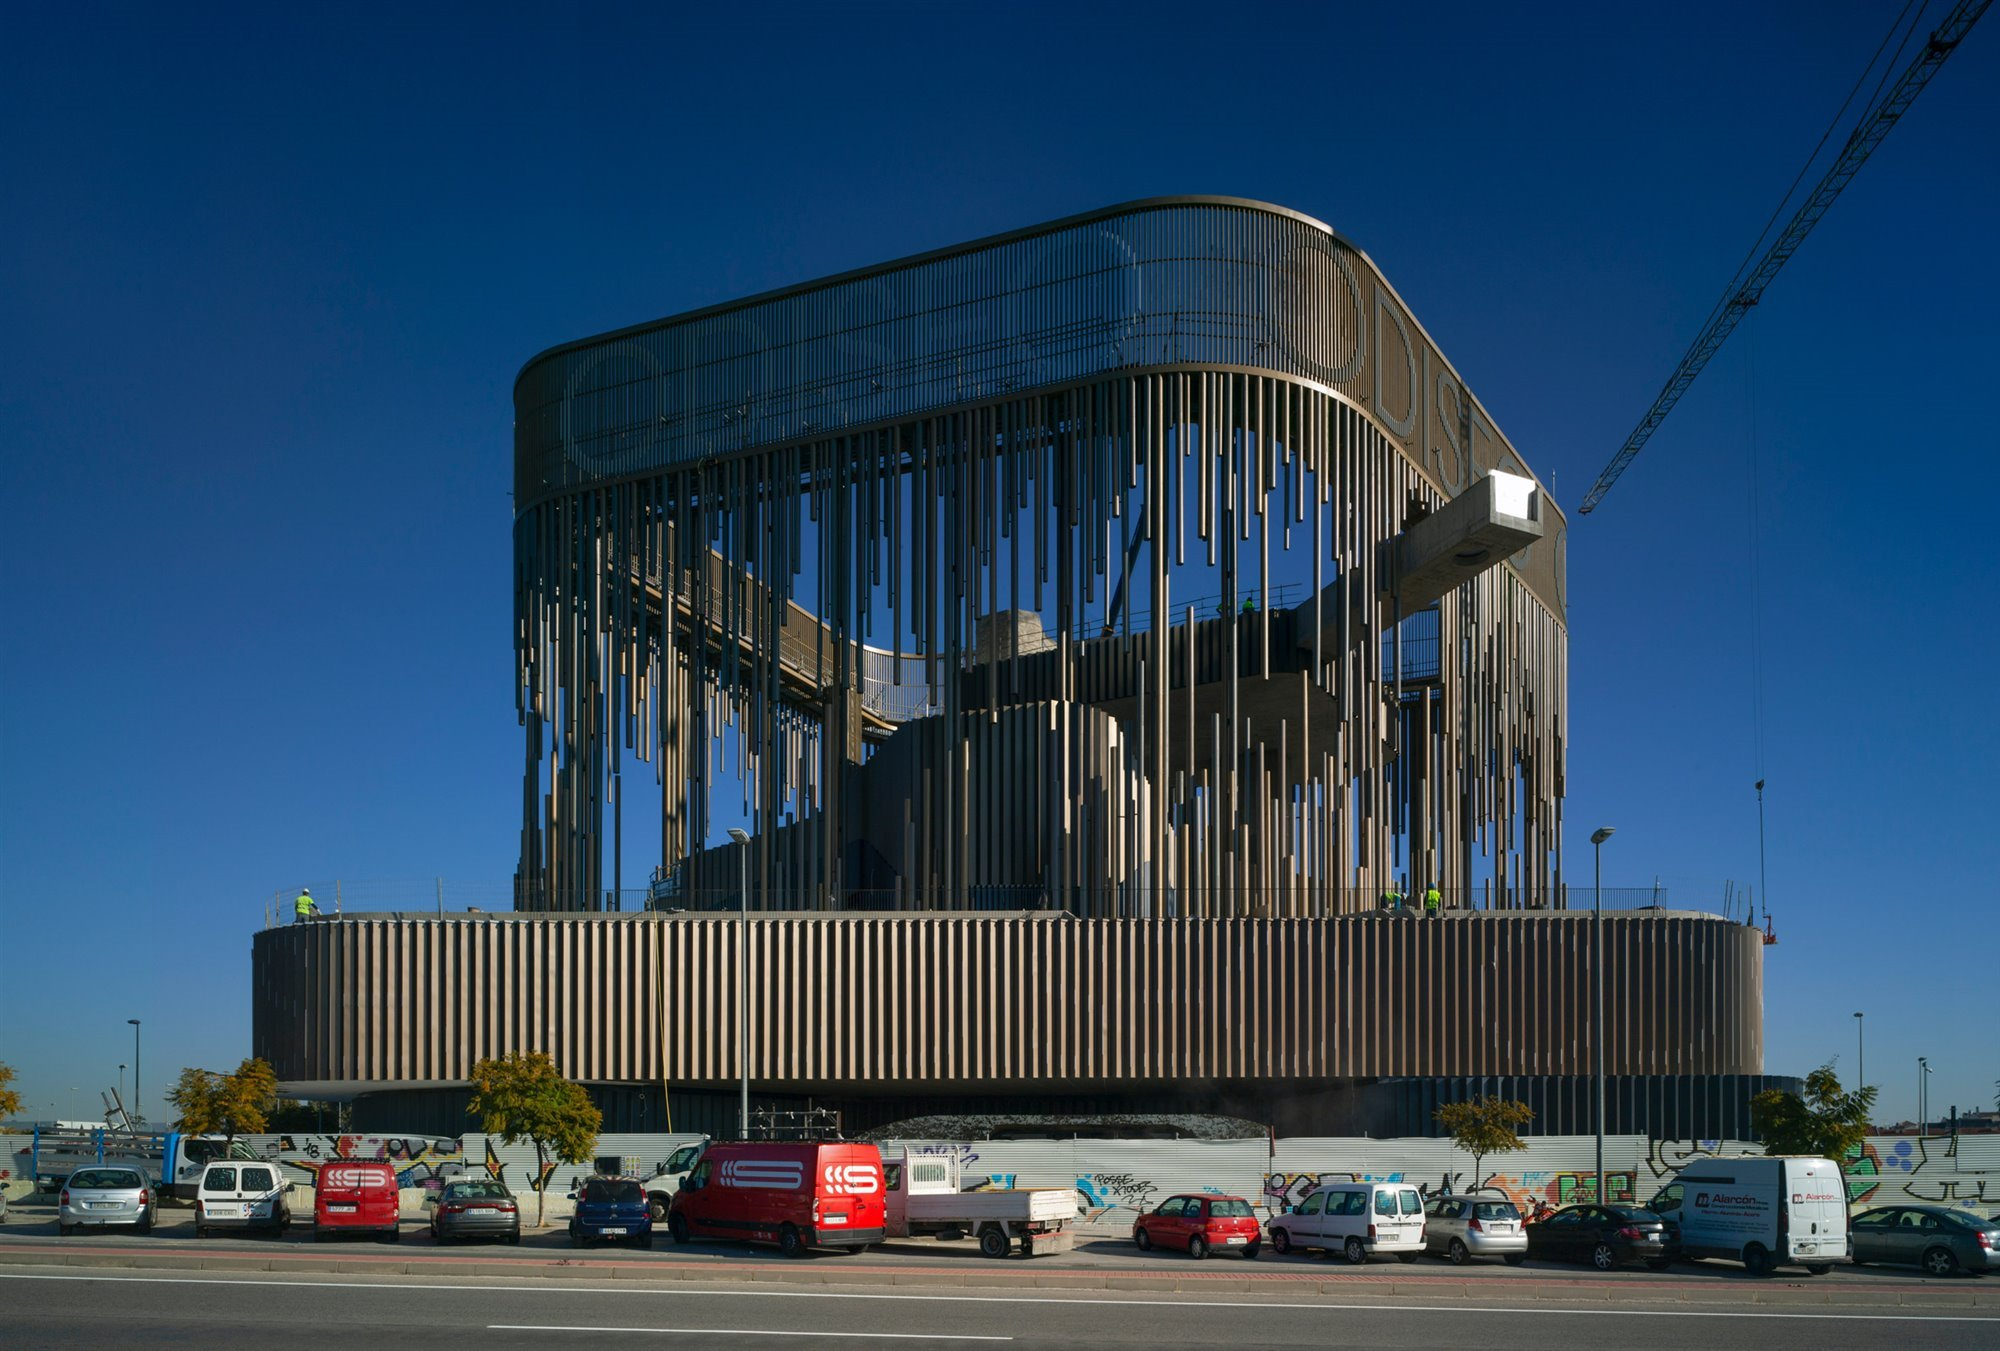 odiseo-casino-cantilevered-pool-longest-europe-murcia-spain-clavel-arquitectos